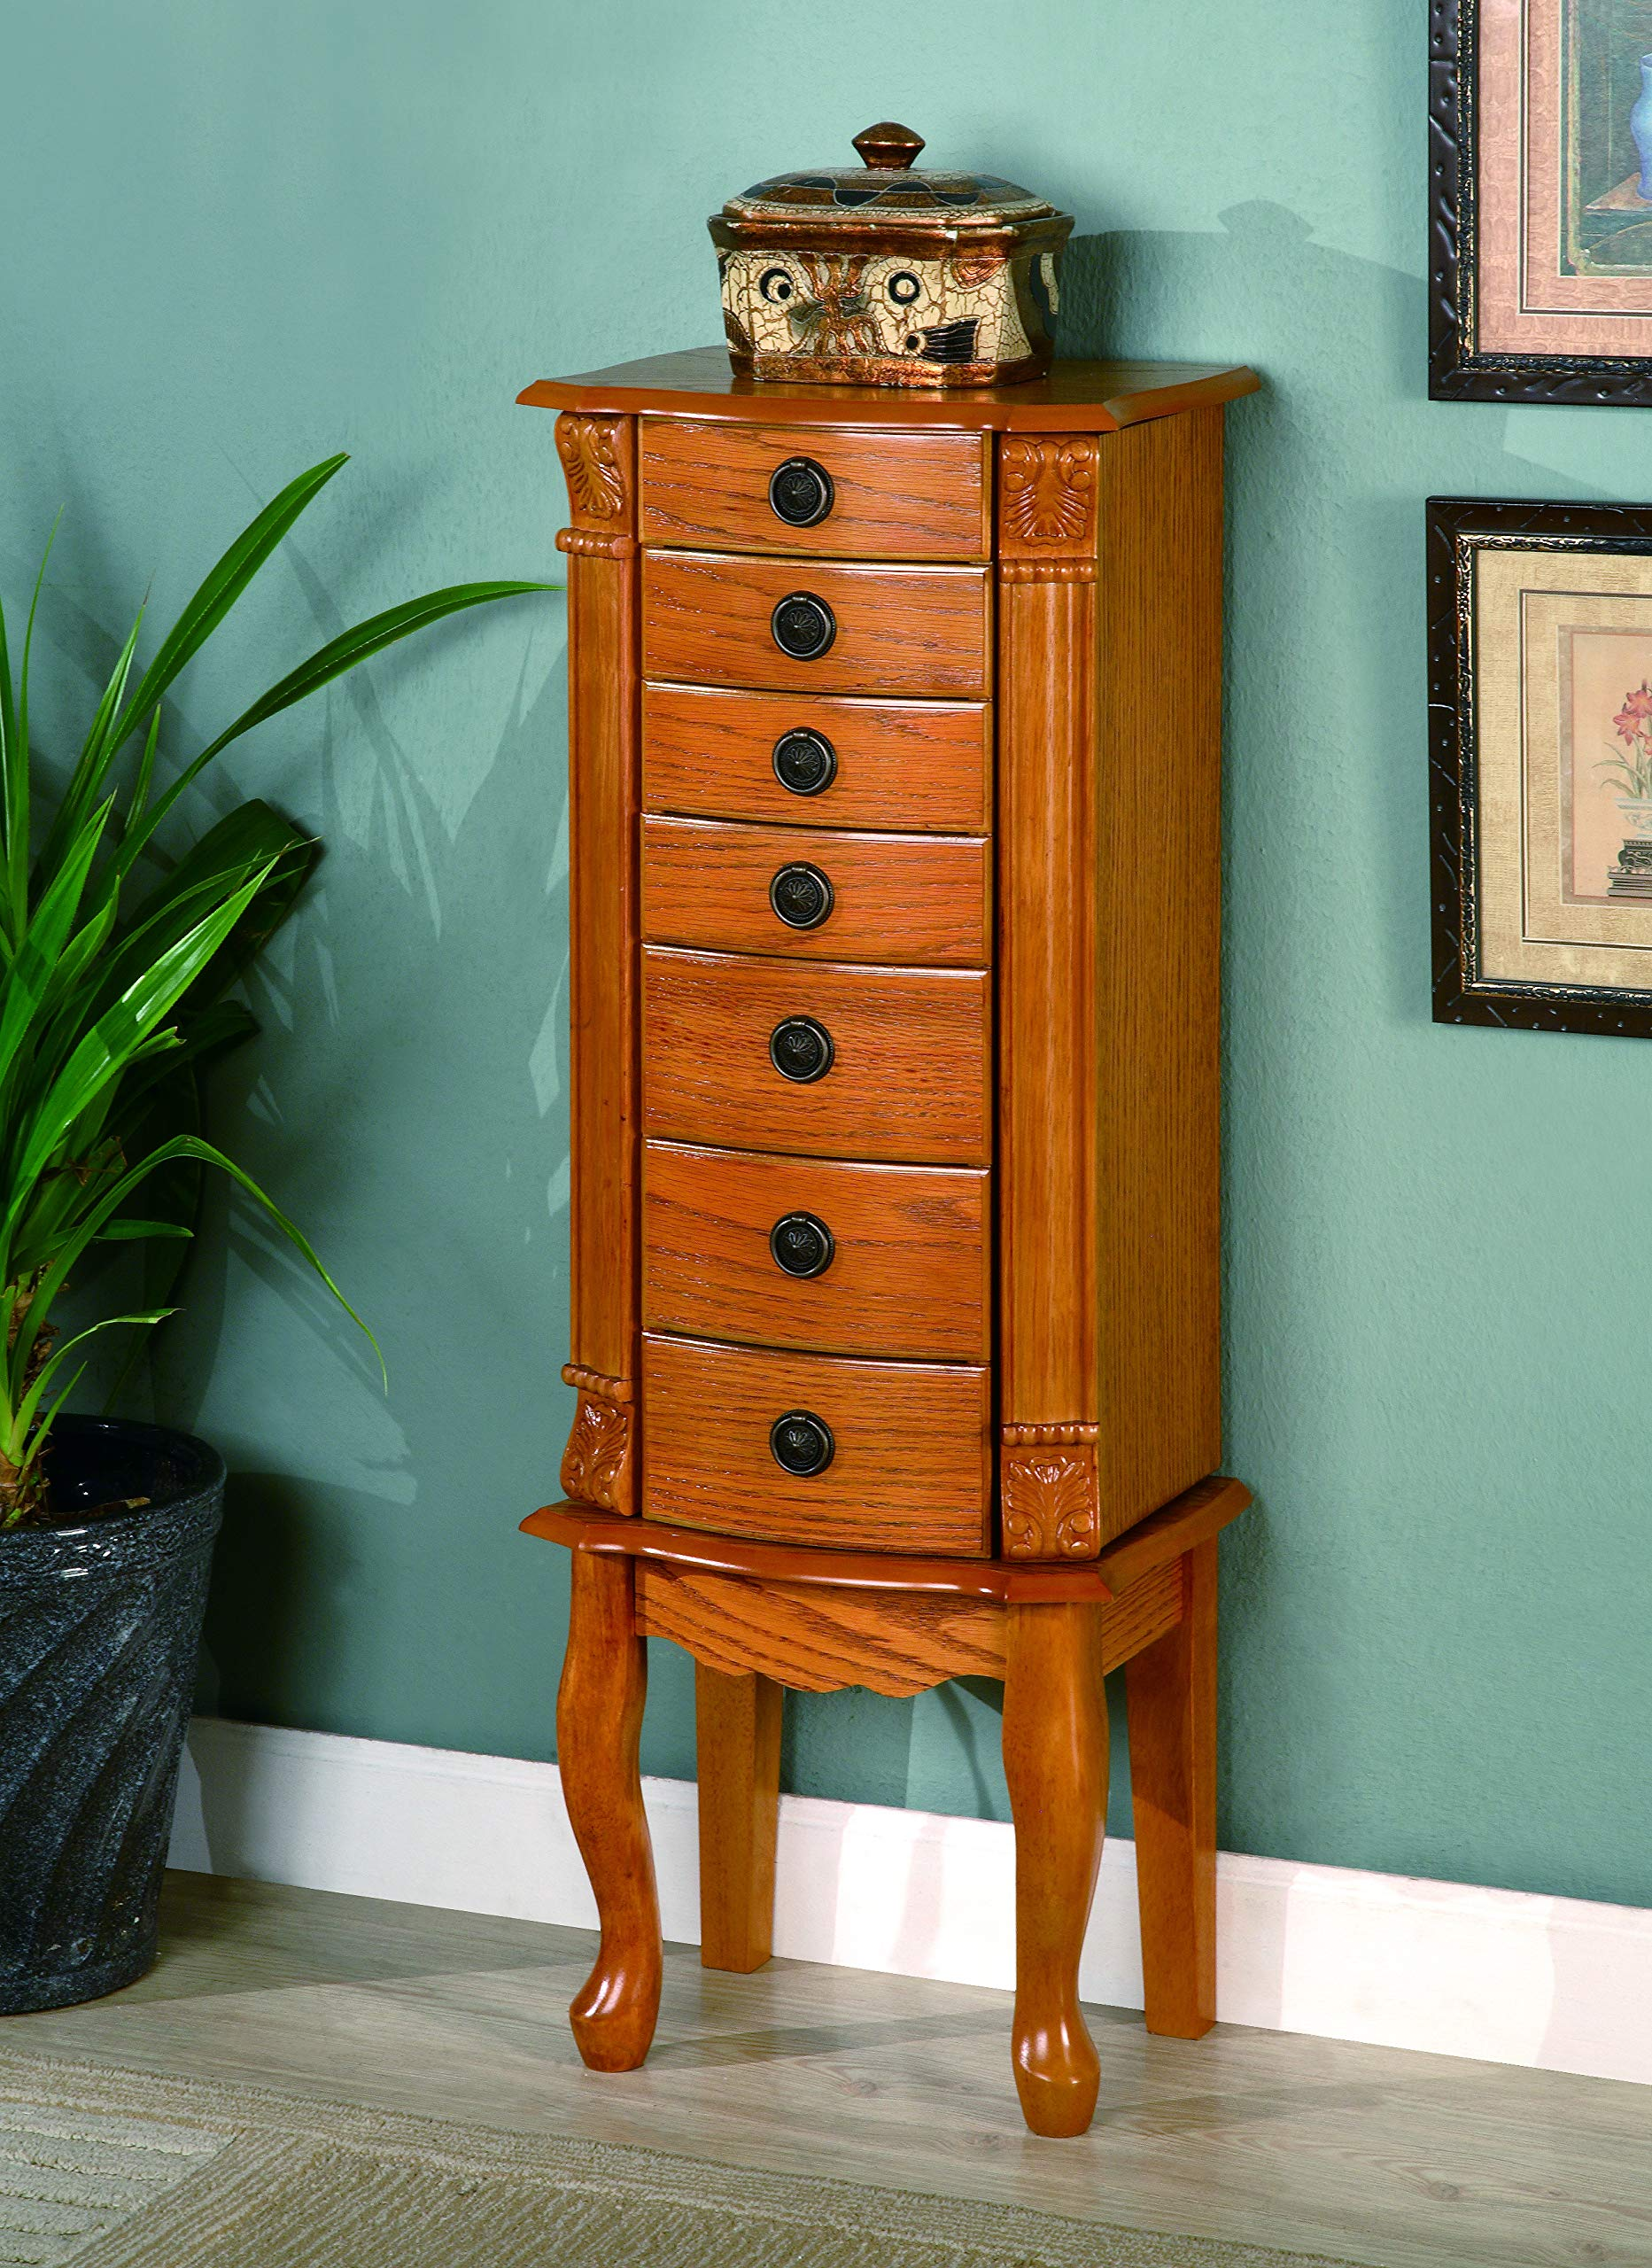 Coaster Classic Oak Jewelry Armoire, Honey by Coaster Home Furnishings